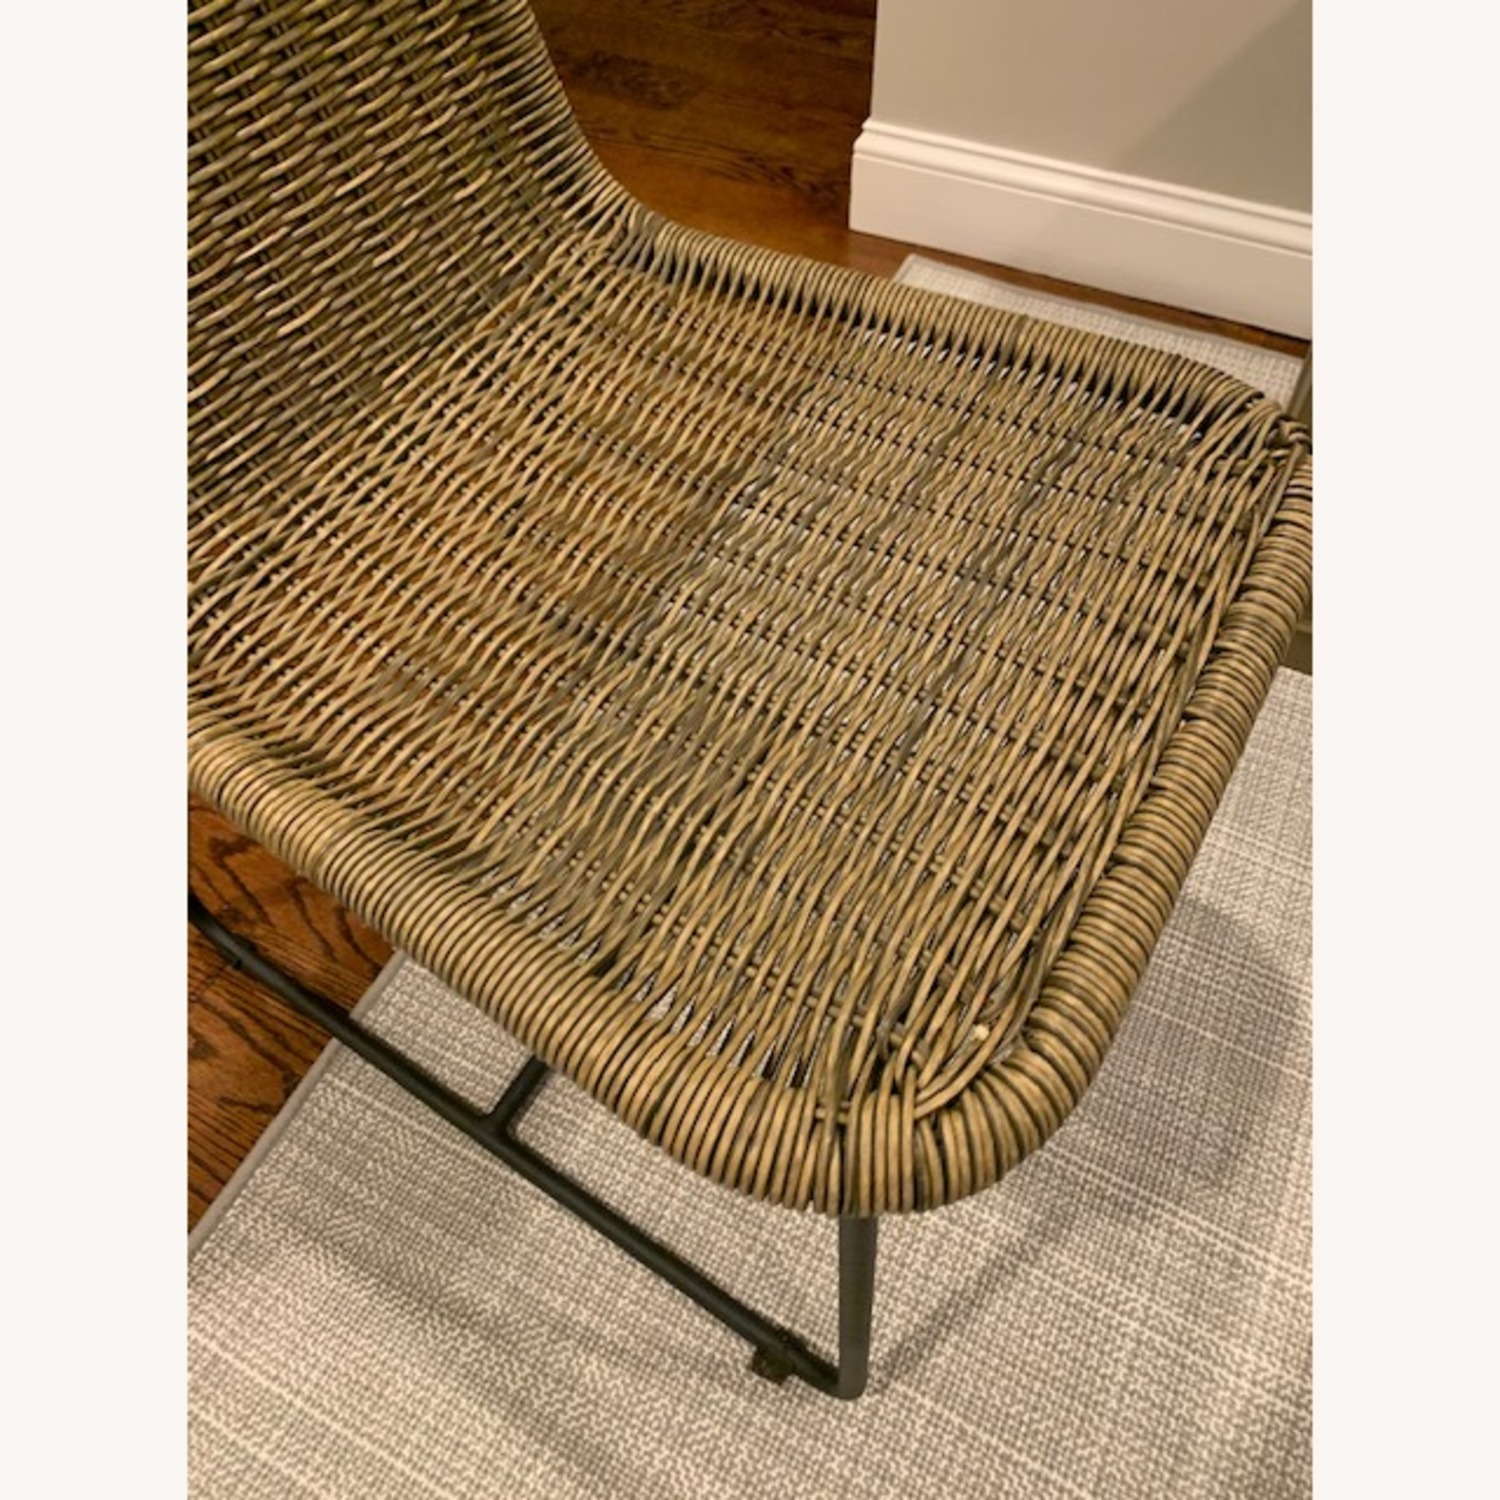 Pottery Barn Woven Grey Chairs - image-3